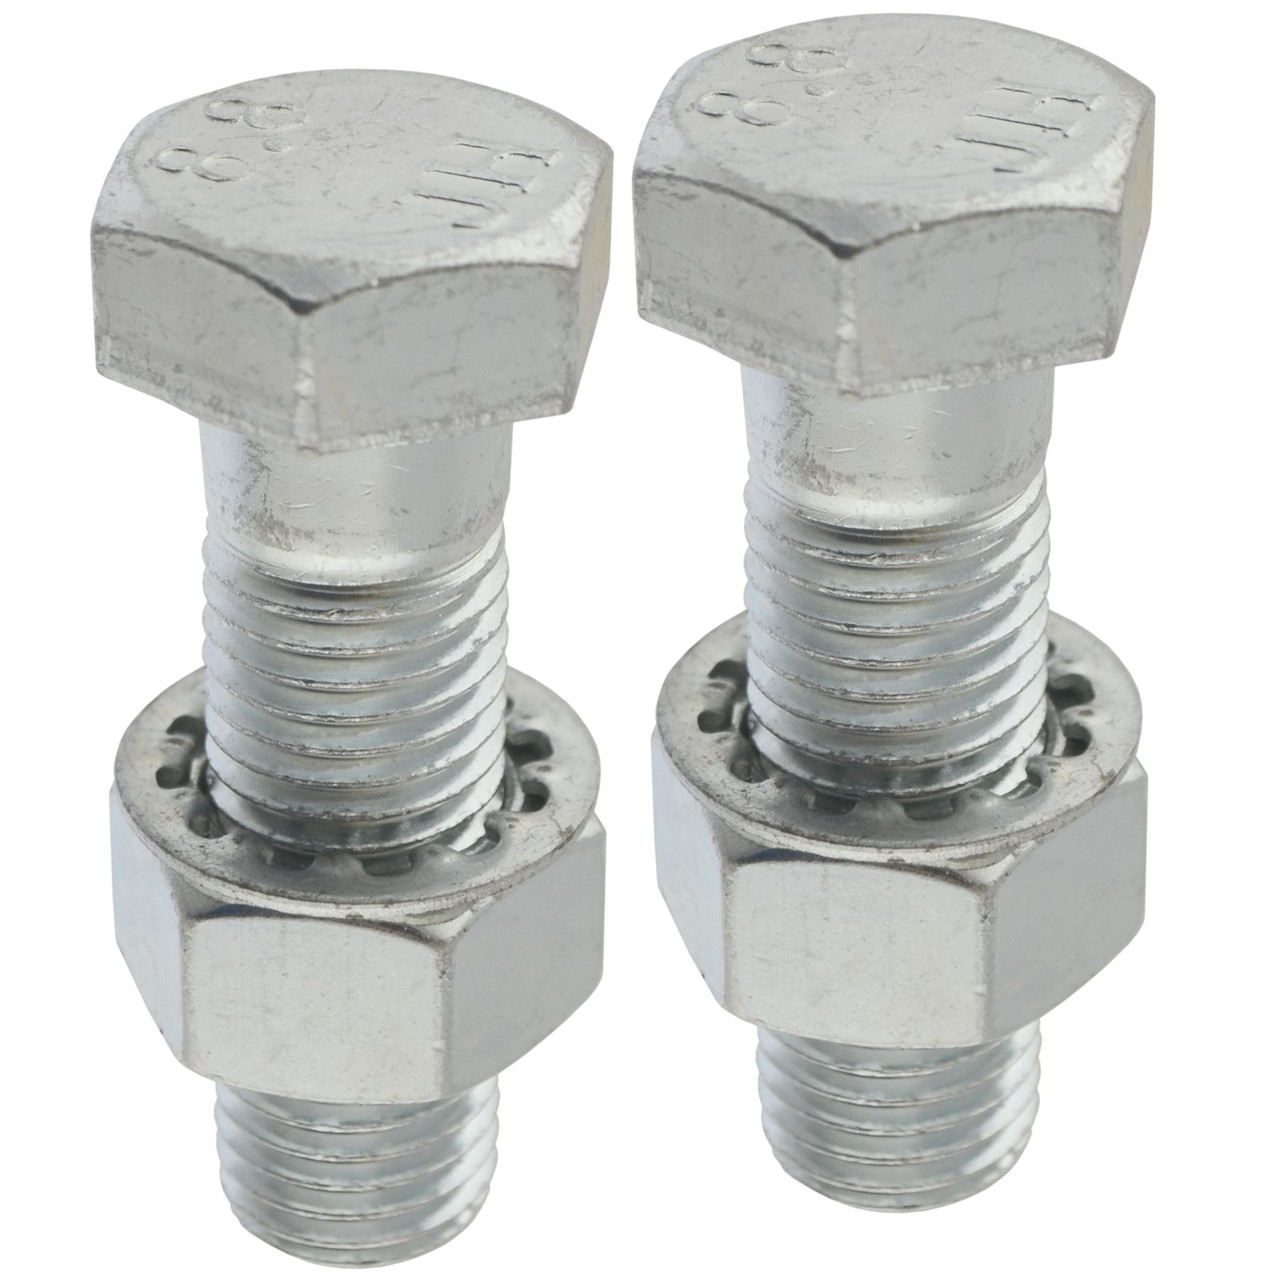 PAIR Tow Bar Tow Ball Bolts 65mm Long C//w Nuts /& Washers 8.8 HIGH TENSILE.